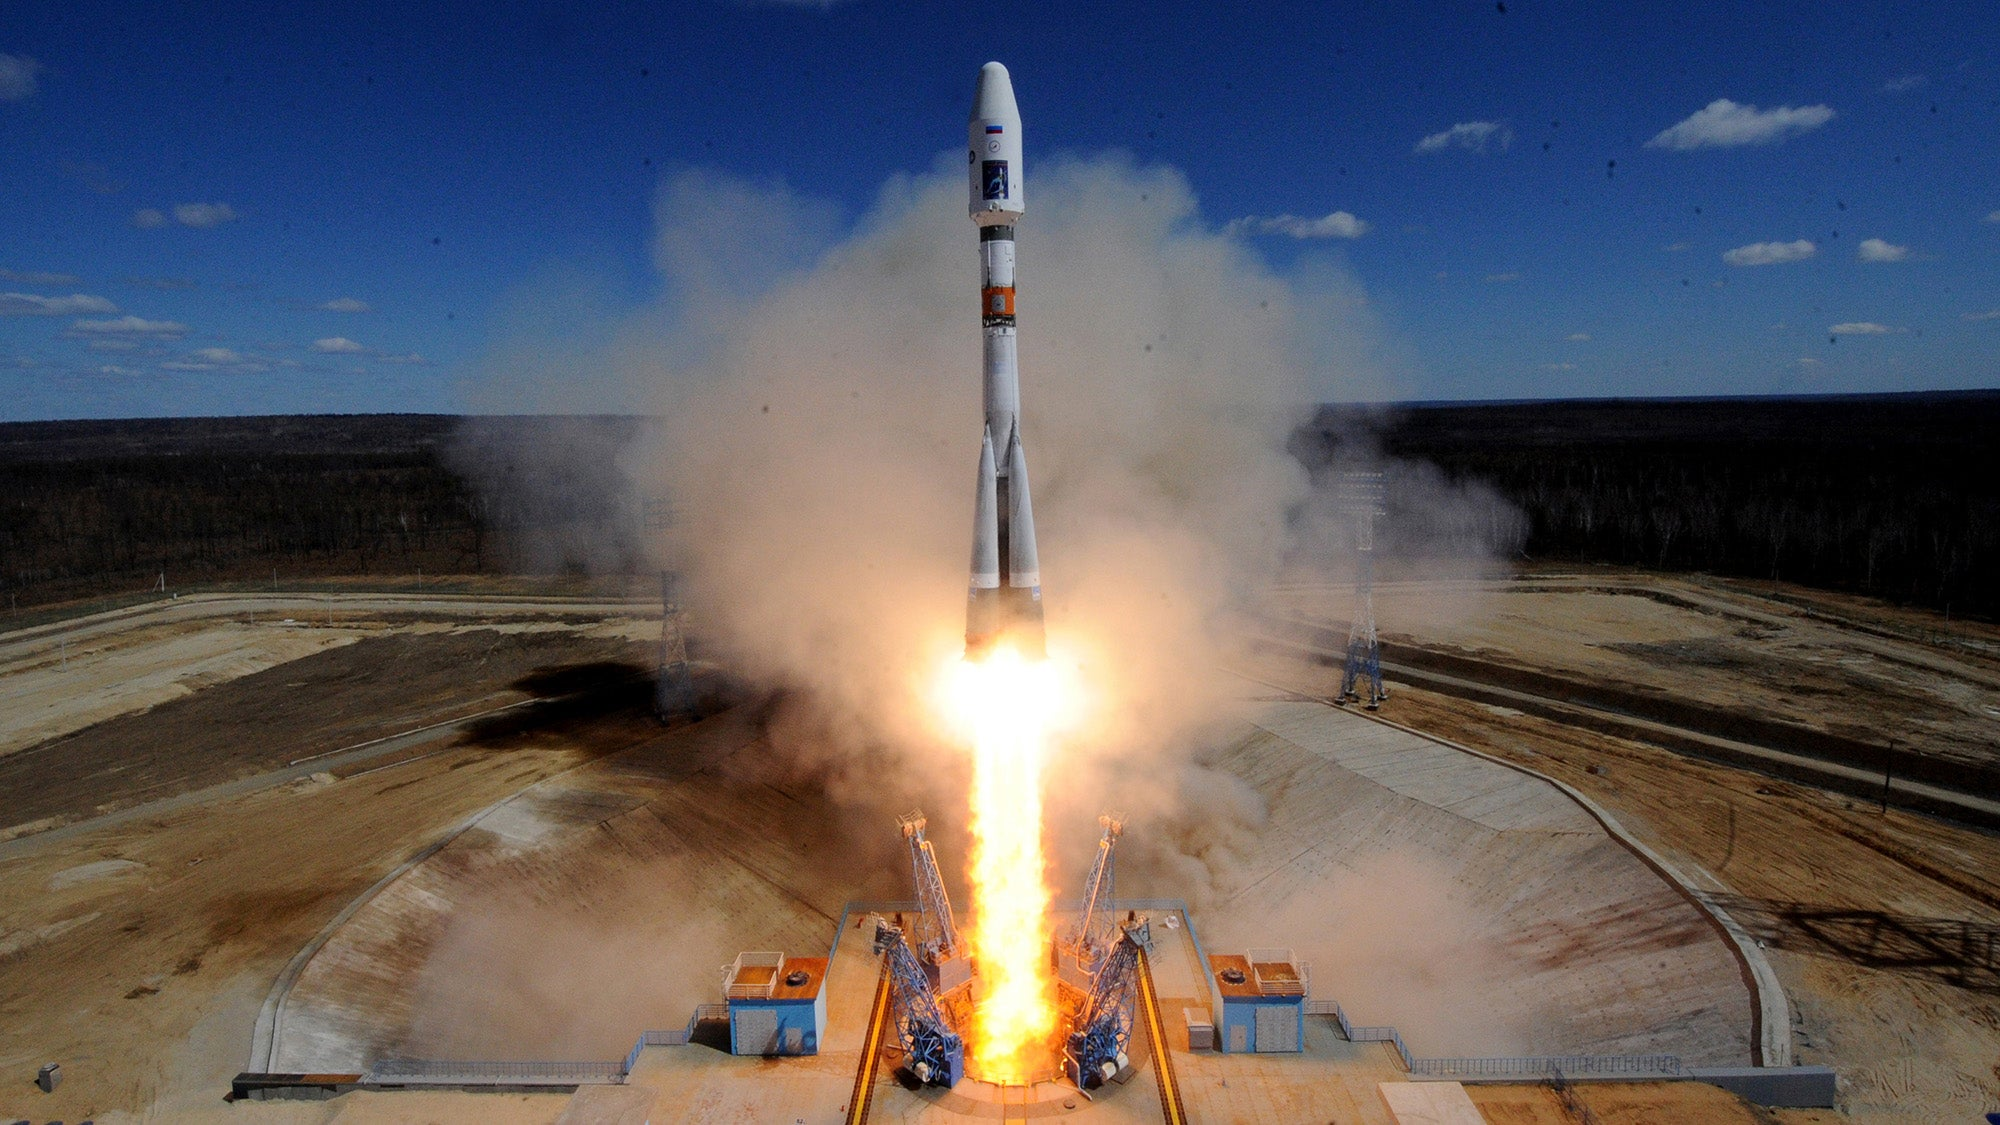 The Delayed Rocket Launch That Really Pissed Off Putin